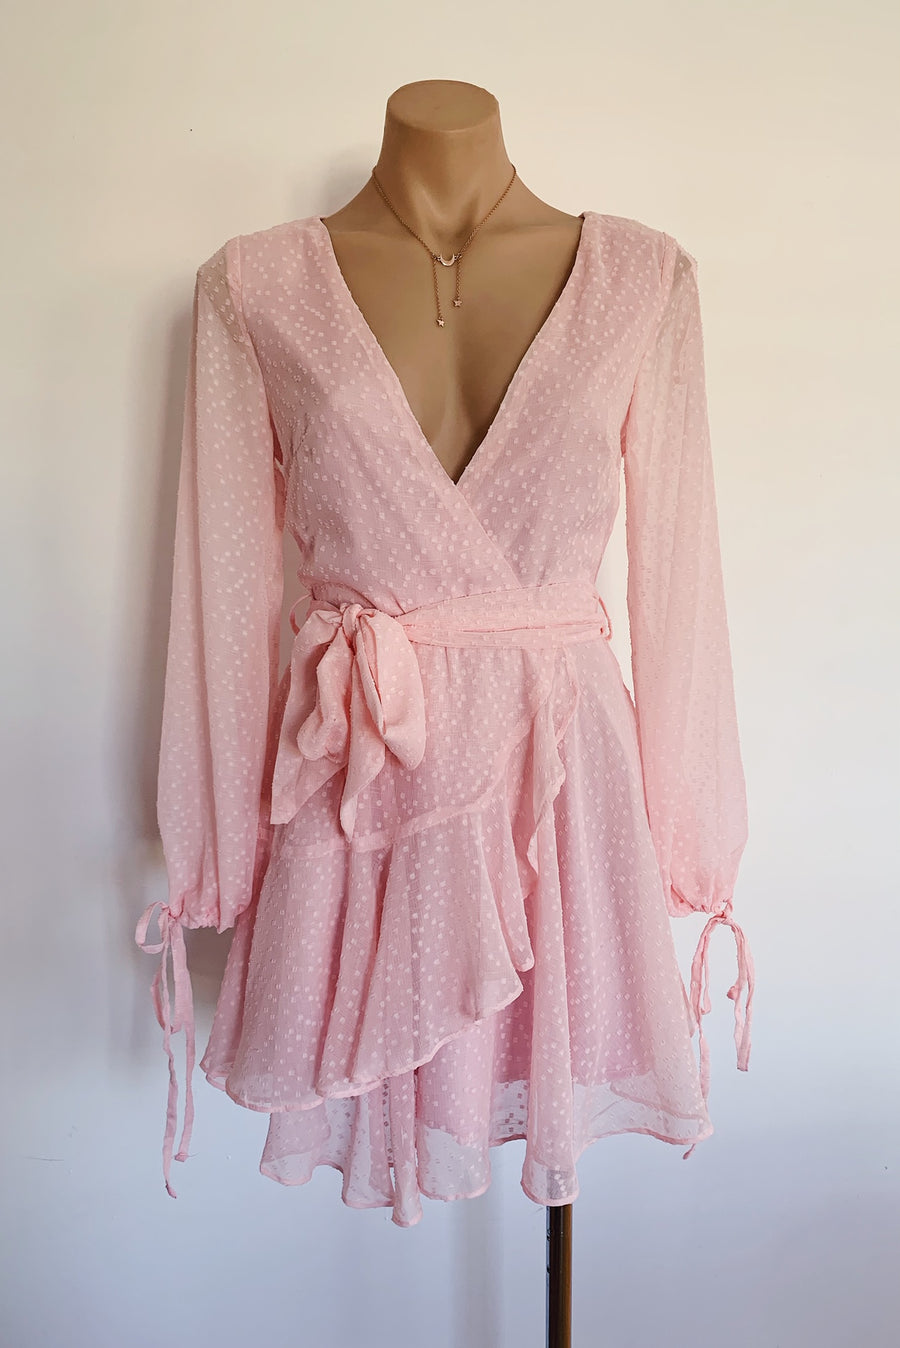 Sky high dress in Pink for $85.00